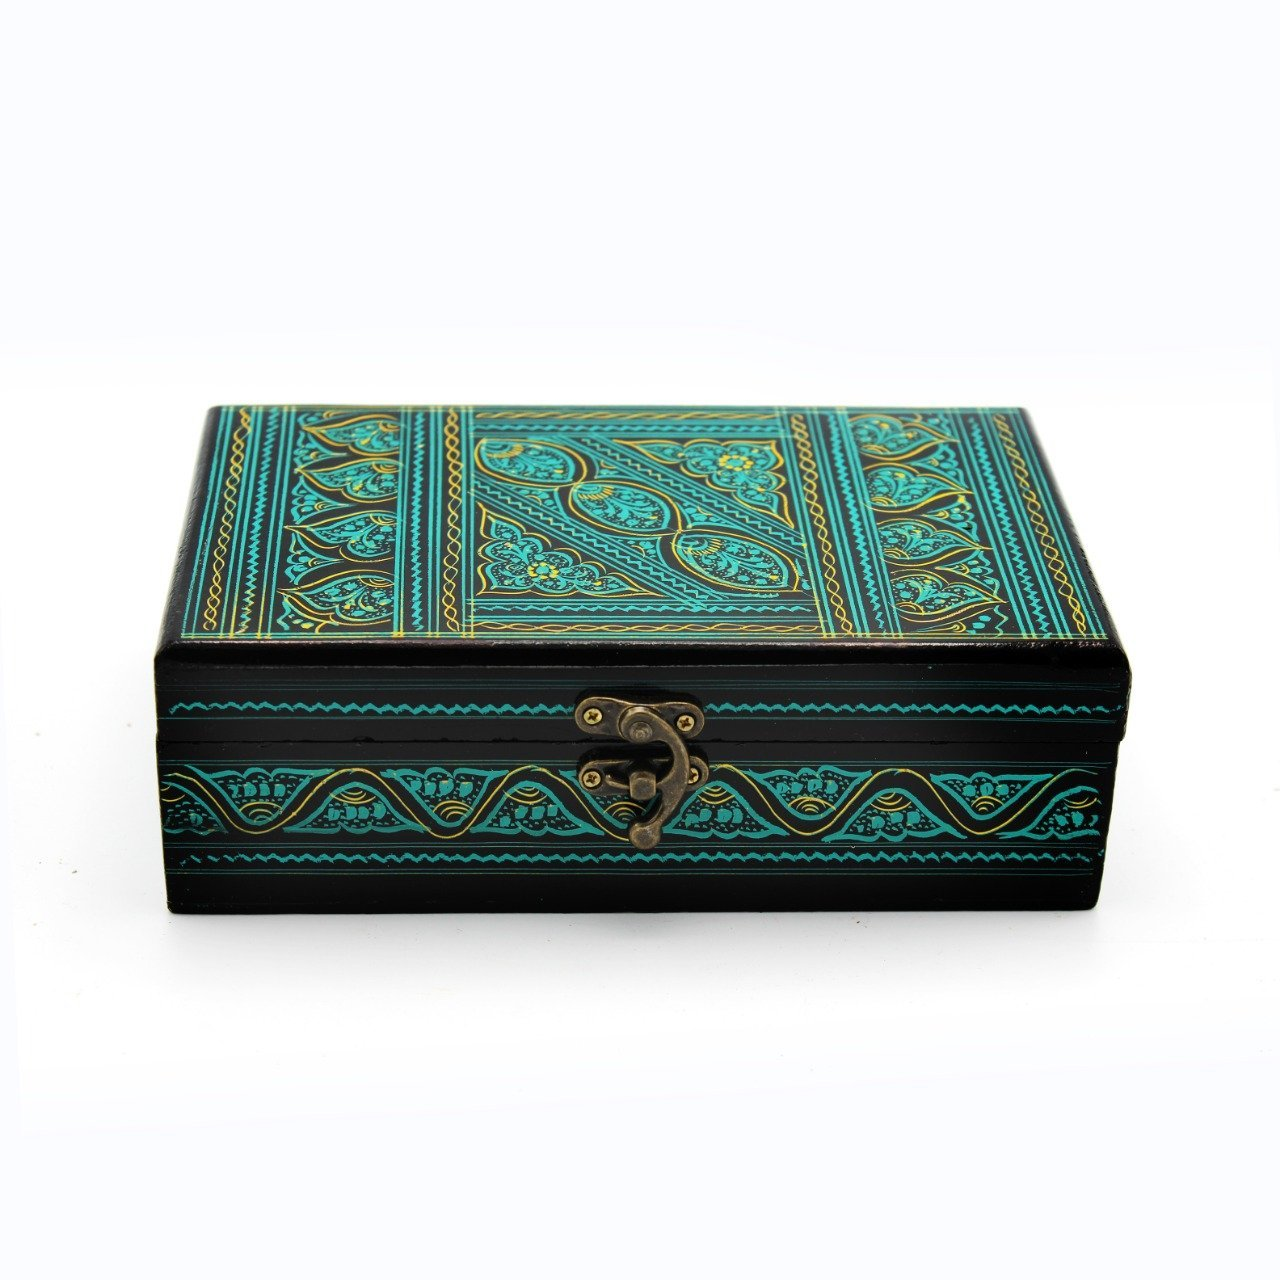 "Wooden Hand Made Jewellery Box - Small - 8"" x 5"" - waseeh.com"